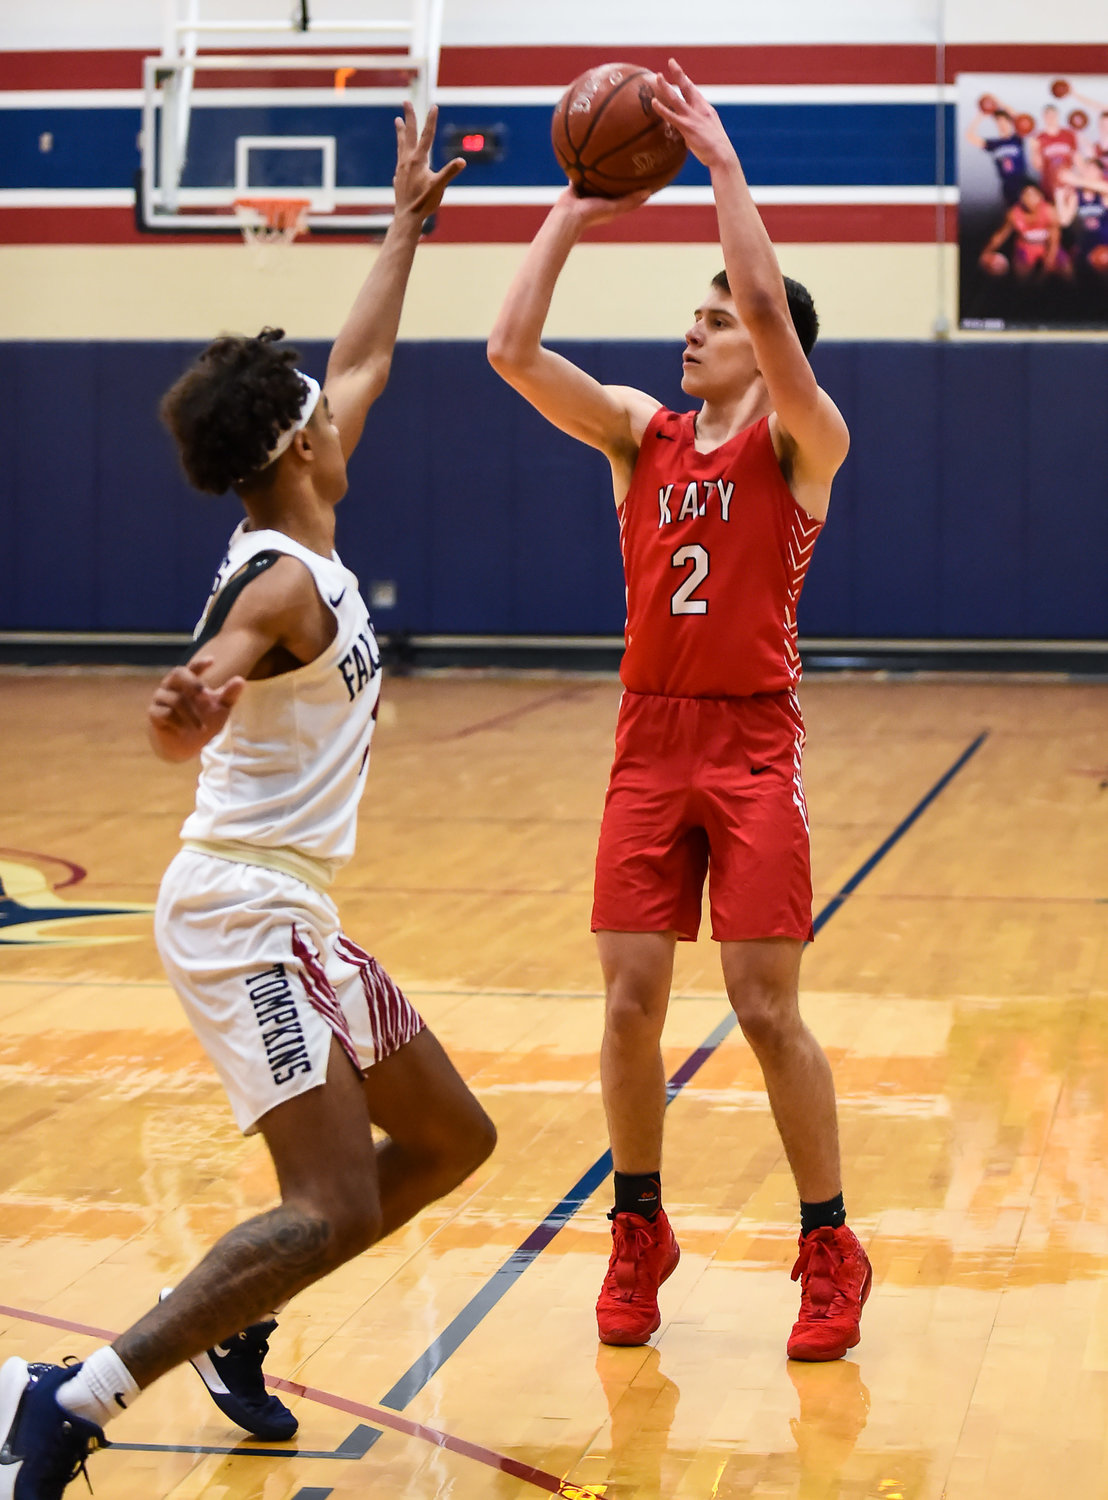 Katy Tx. Jan. 10, 2019: Katy's Bryce Purchase (2) goes up for the three point attempt during a district basketball game between Tompkins Falcons and Katy Tigers at Tompkins HS.  (Photo by Mark Goodman / Katy Times)